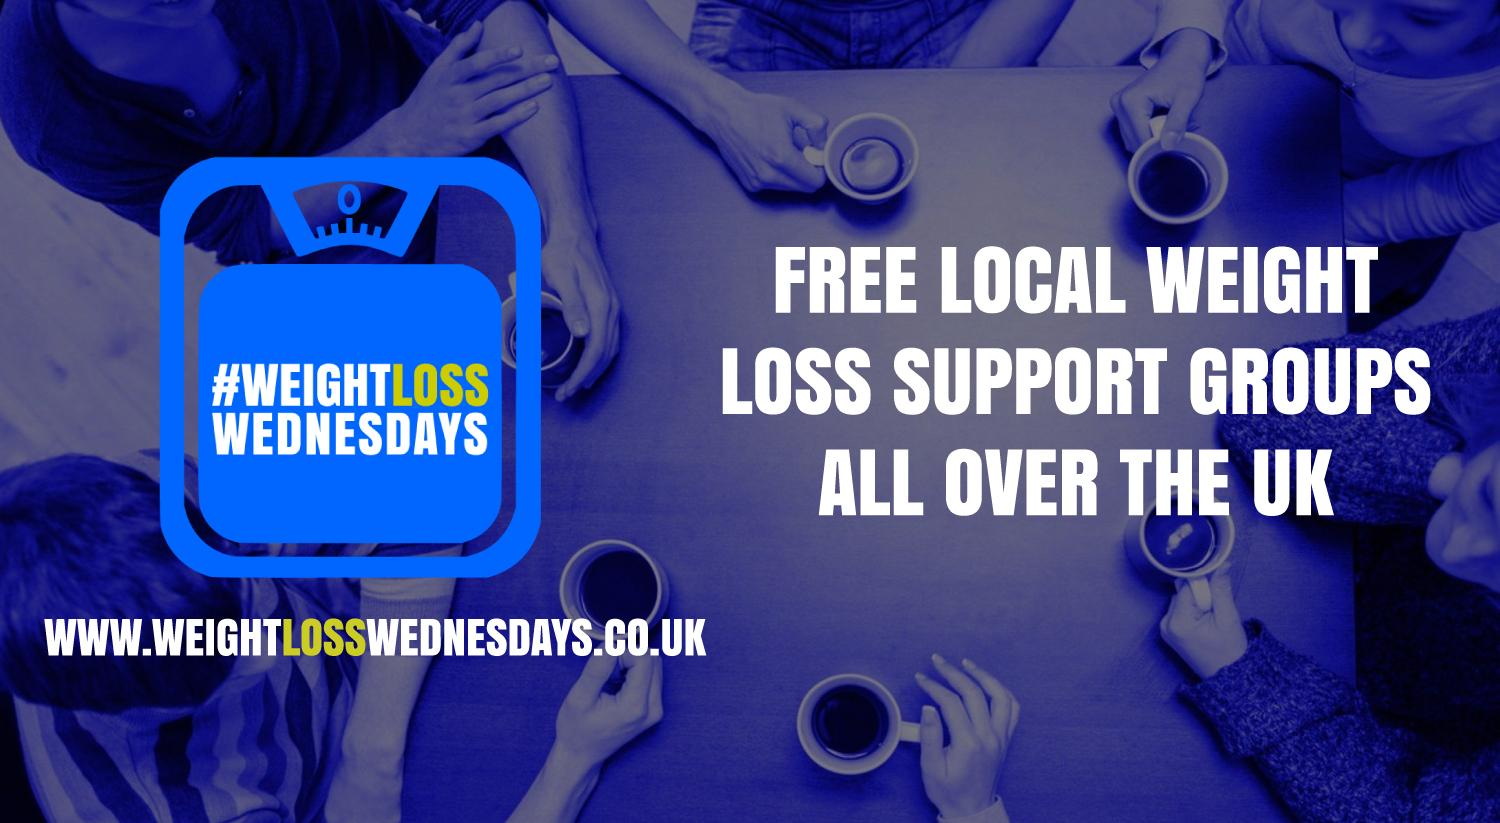 WEIGHT LOSS WEDNESDAYS! Free weekly support group in Willenhall